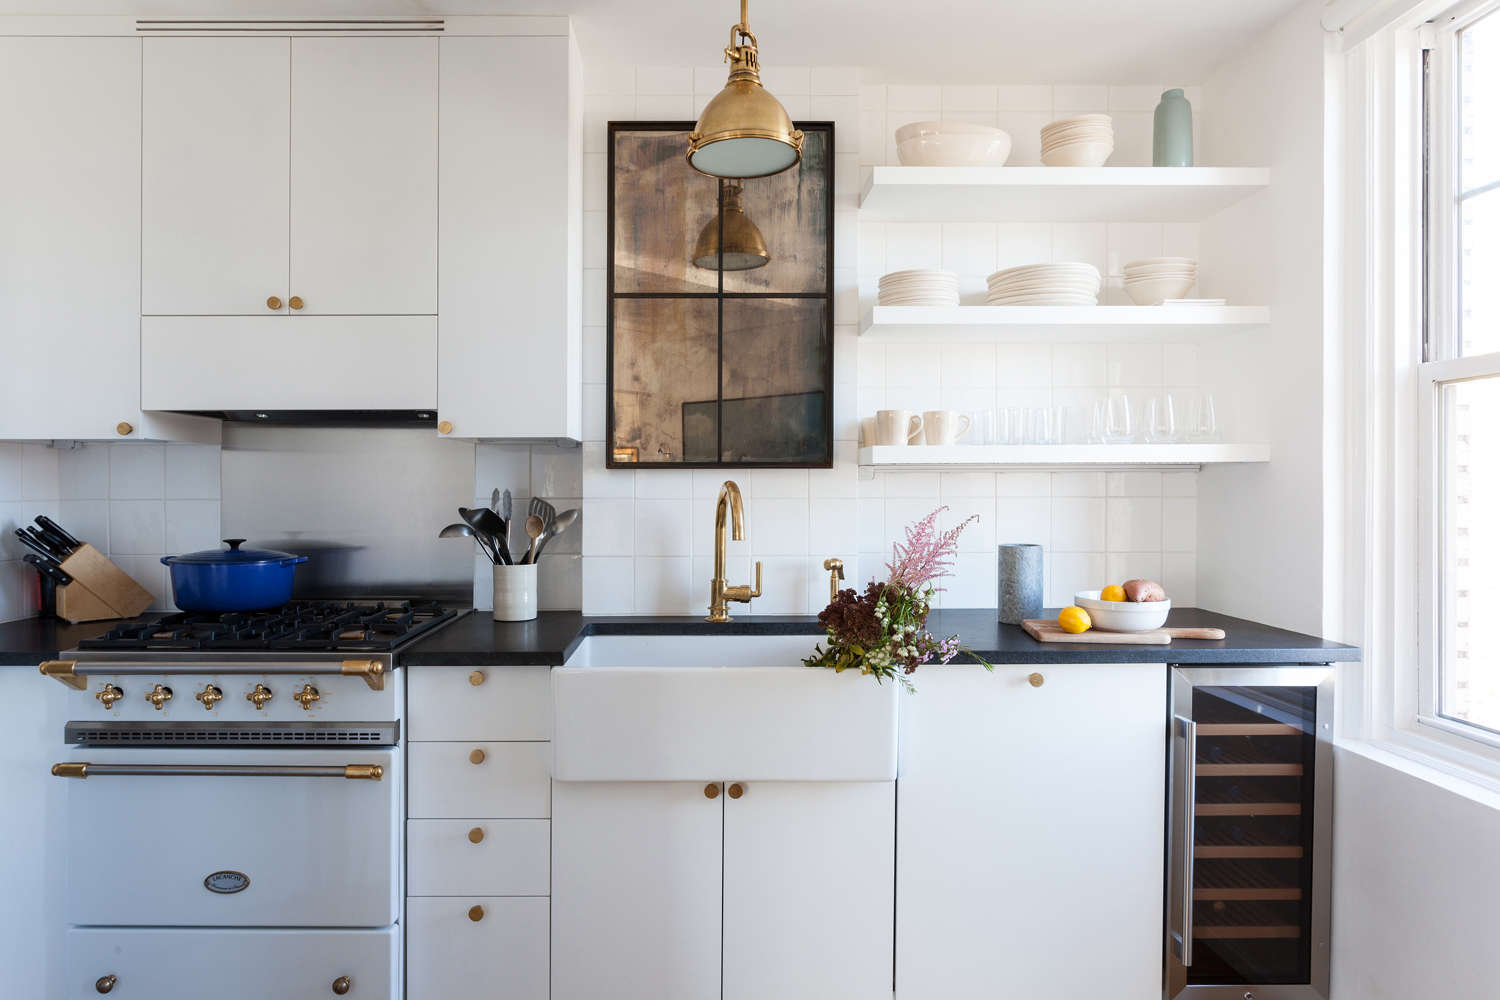 Seth Meyers And Alexi Asheu0027s Compact New York Kitchen Remodeled By Ashe +  Leandro, Photo